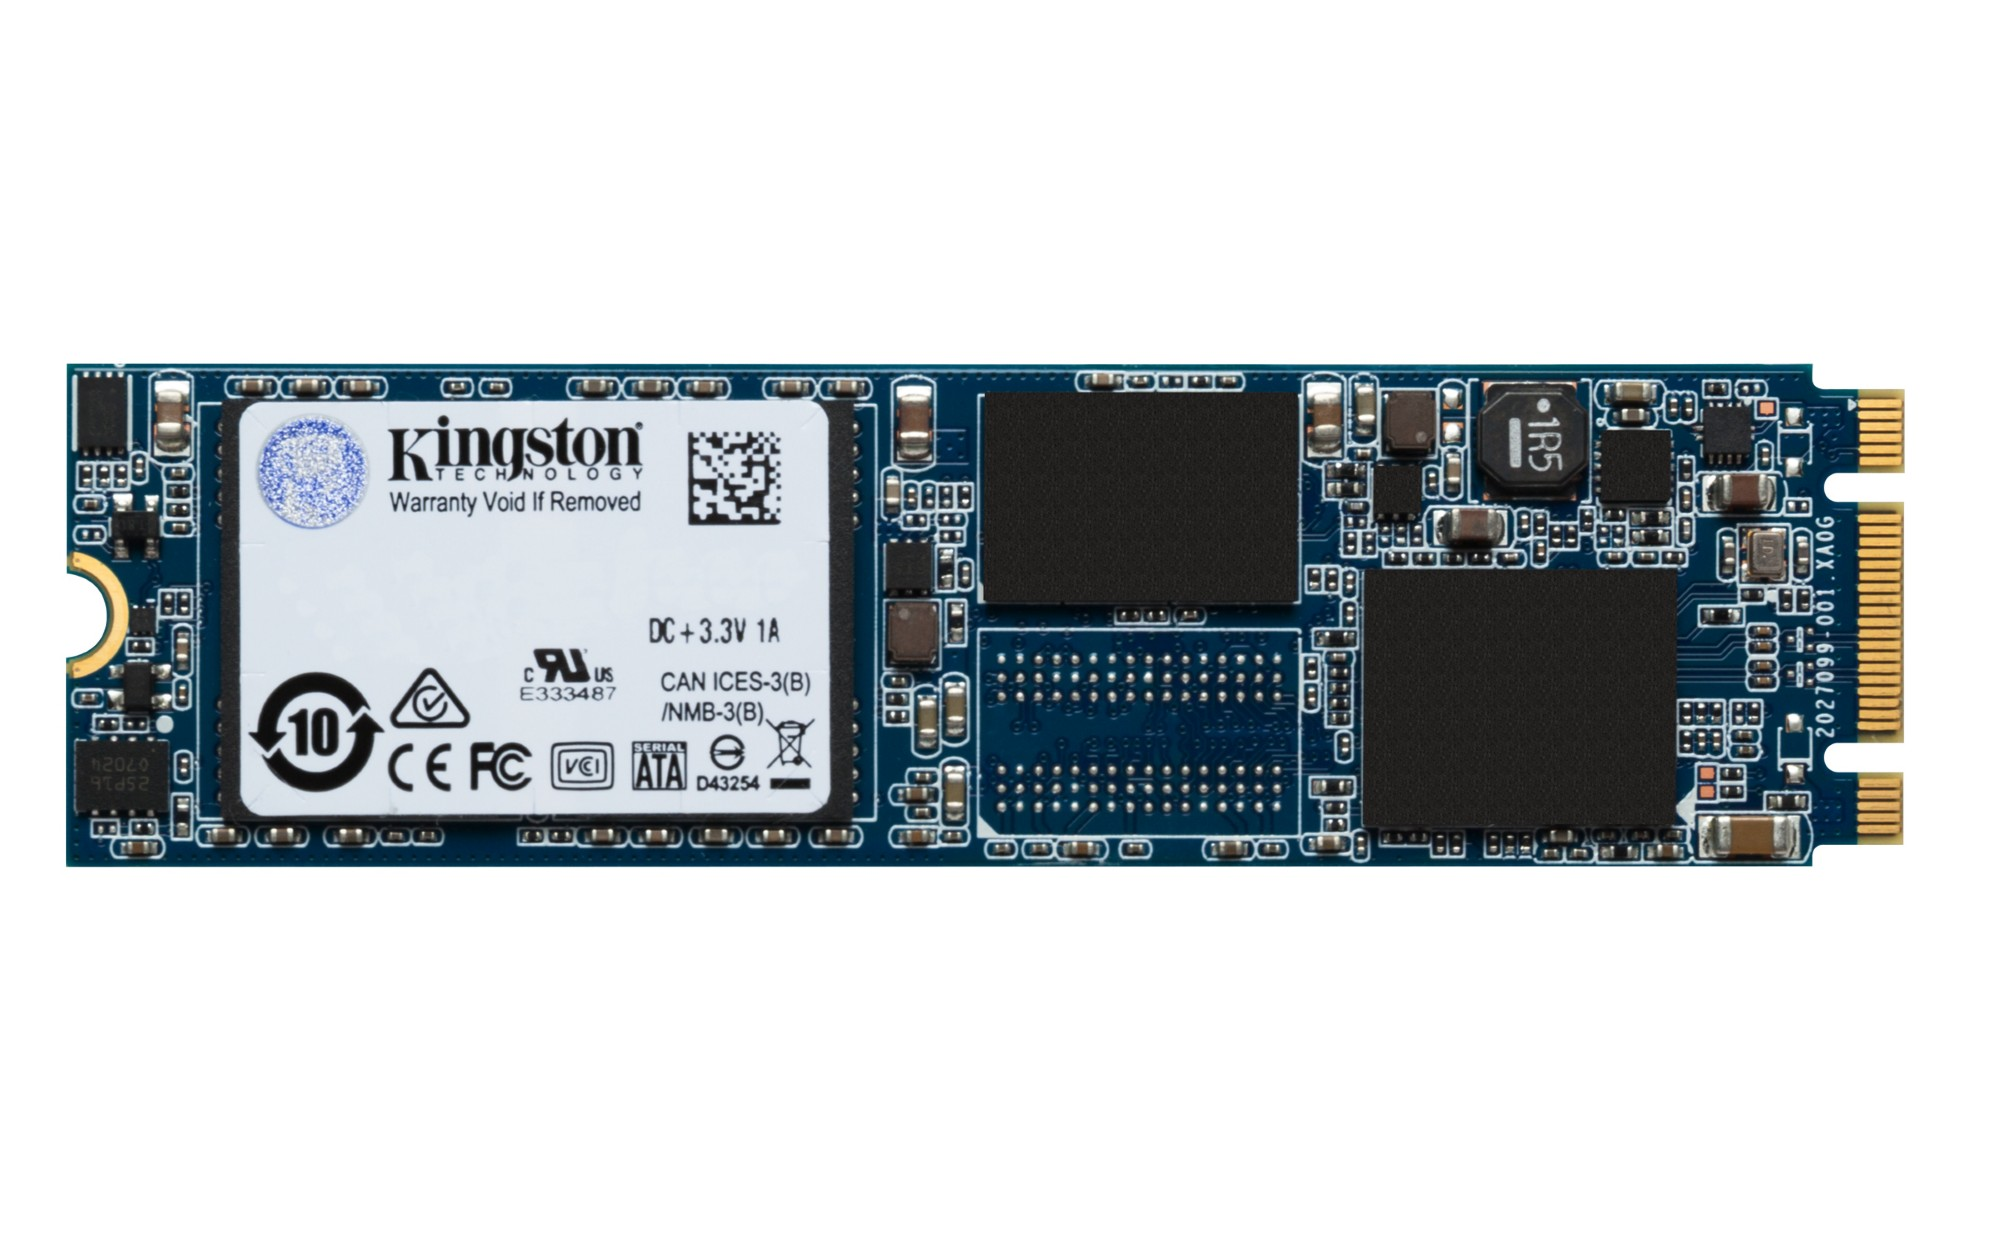 KINGSTON UV500 SSD 120GB M.2 SERIAL ATA III